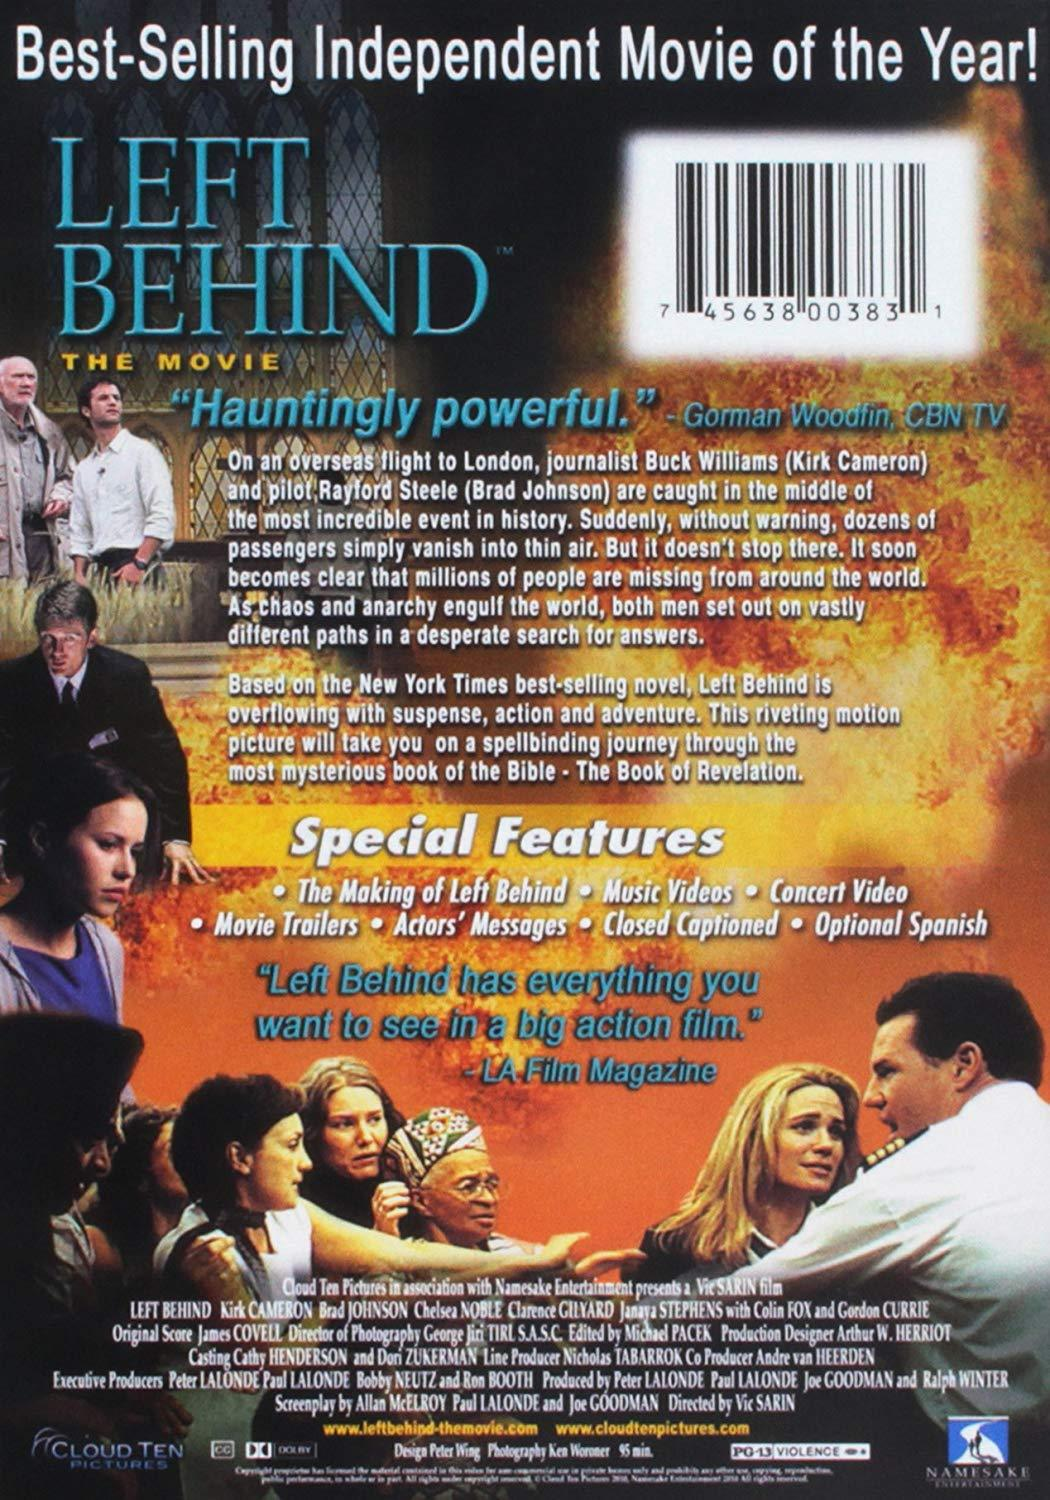 Left Behind - The Movie, DVD 2008, Kirk Cameron, FREE!